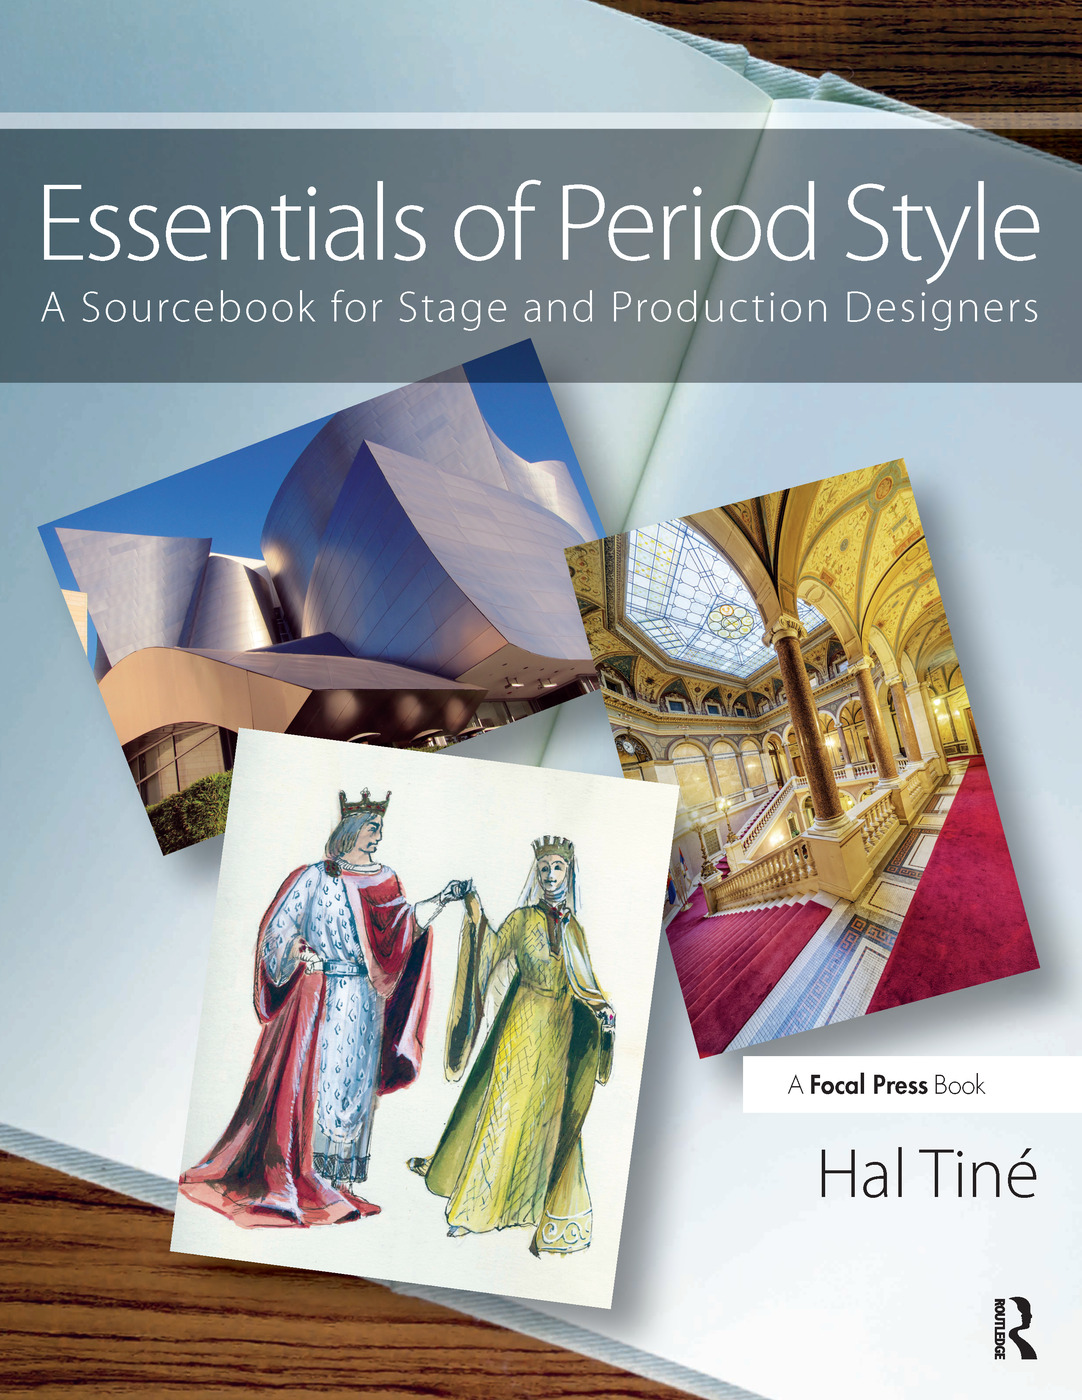 Essentials of Period Style: A Sourcebook for Stage and Production Designers book cover